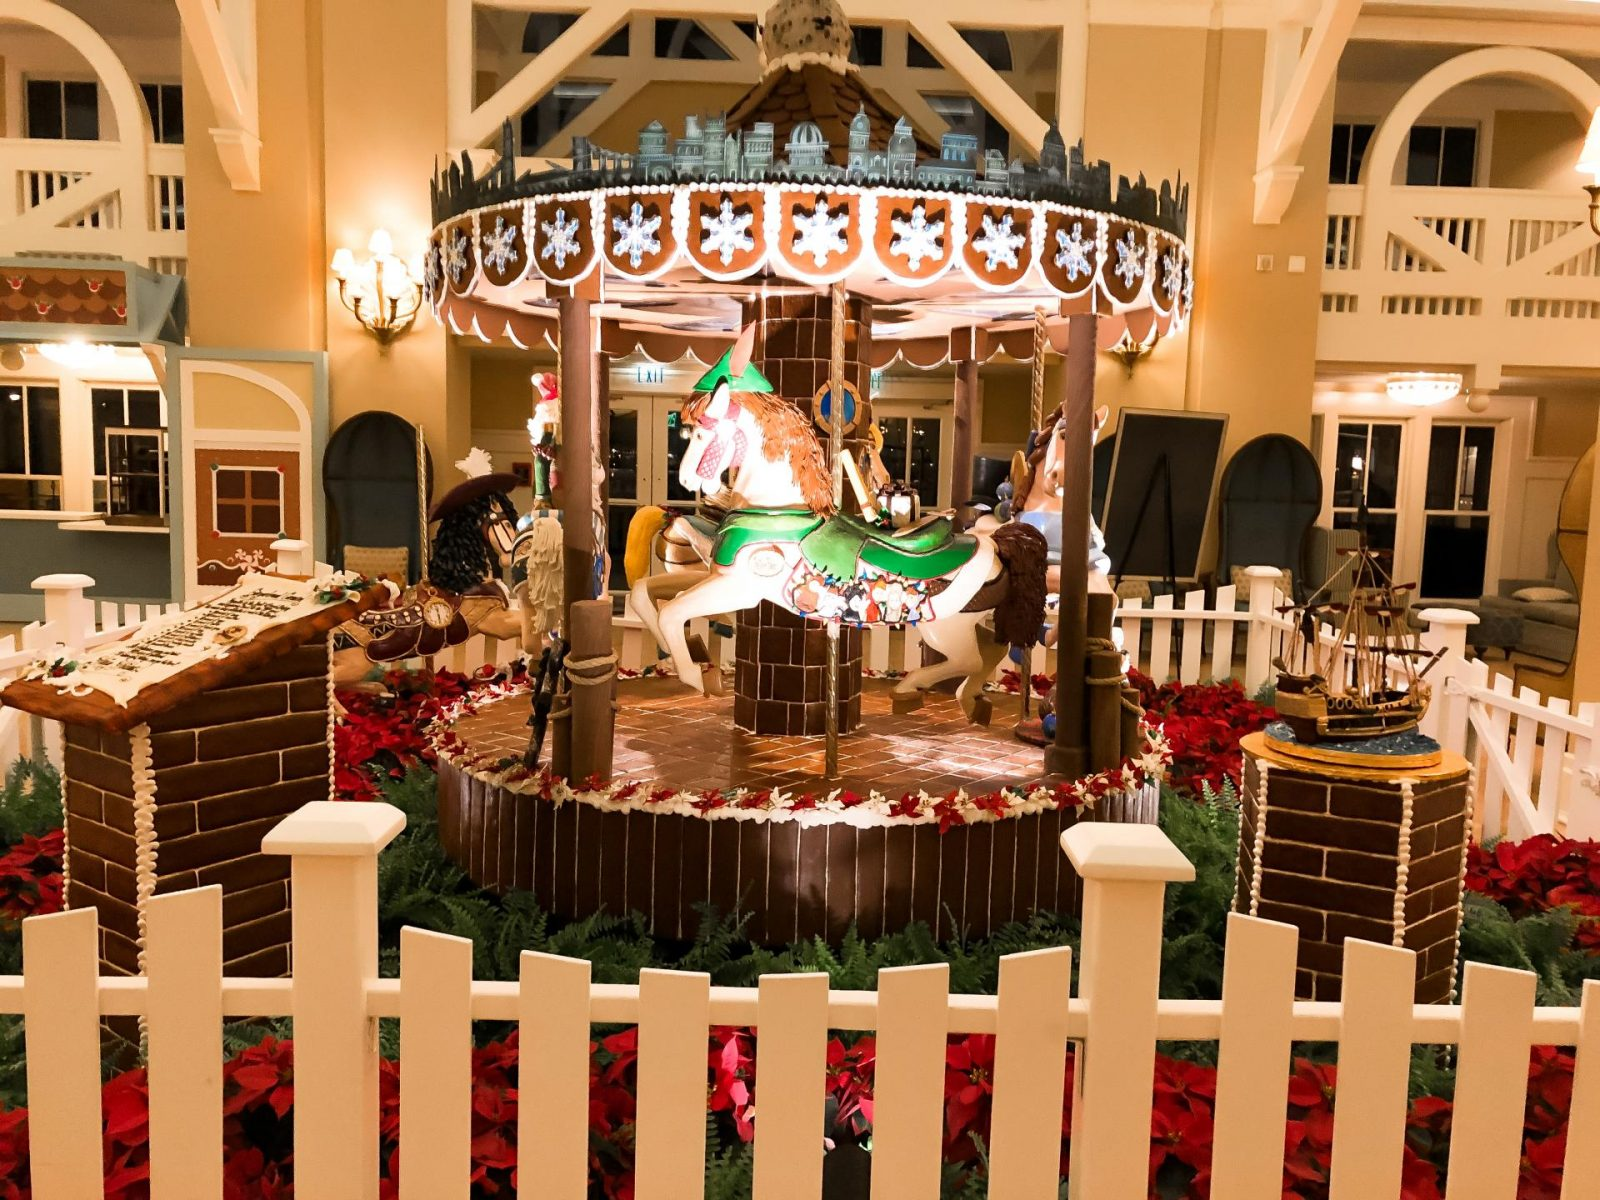 Gingerbread Carousal at Disney's Beach Club Resort